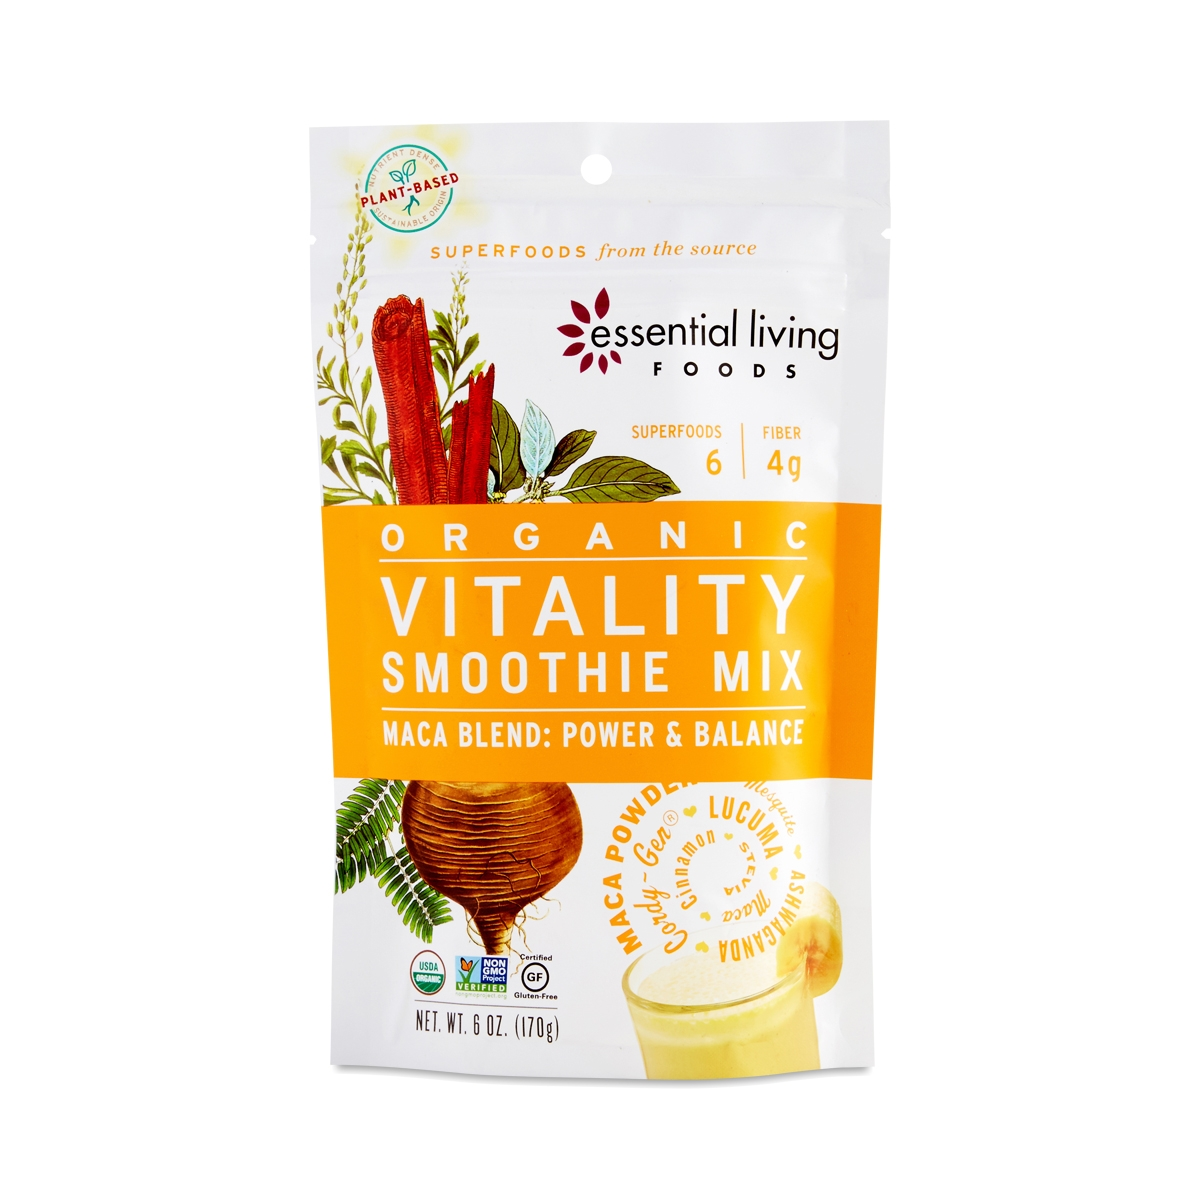 Maca Blend Vitality Smoothie Mix. Thrive · Food · Essential Living Foods